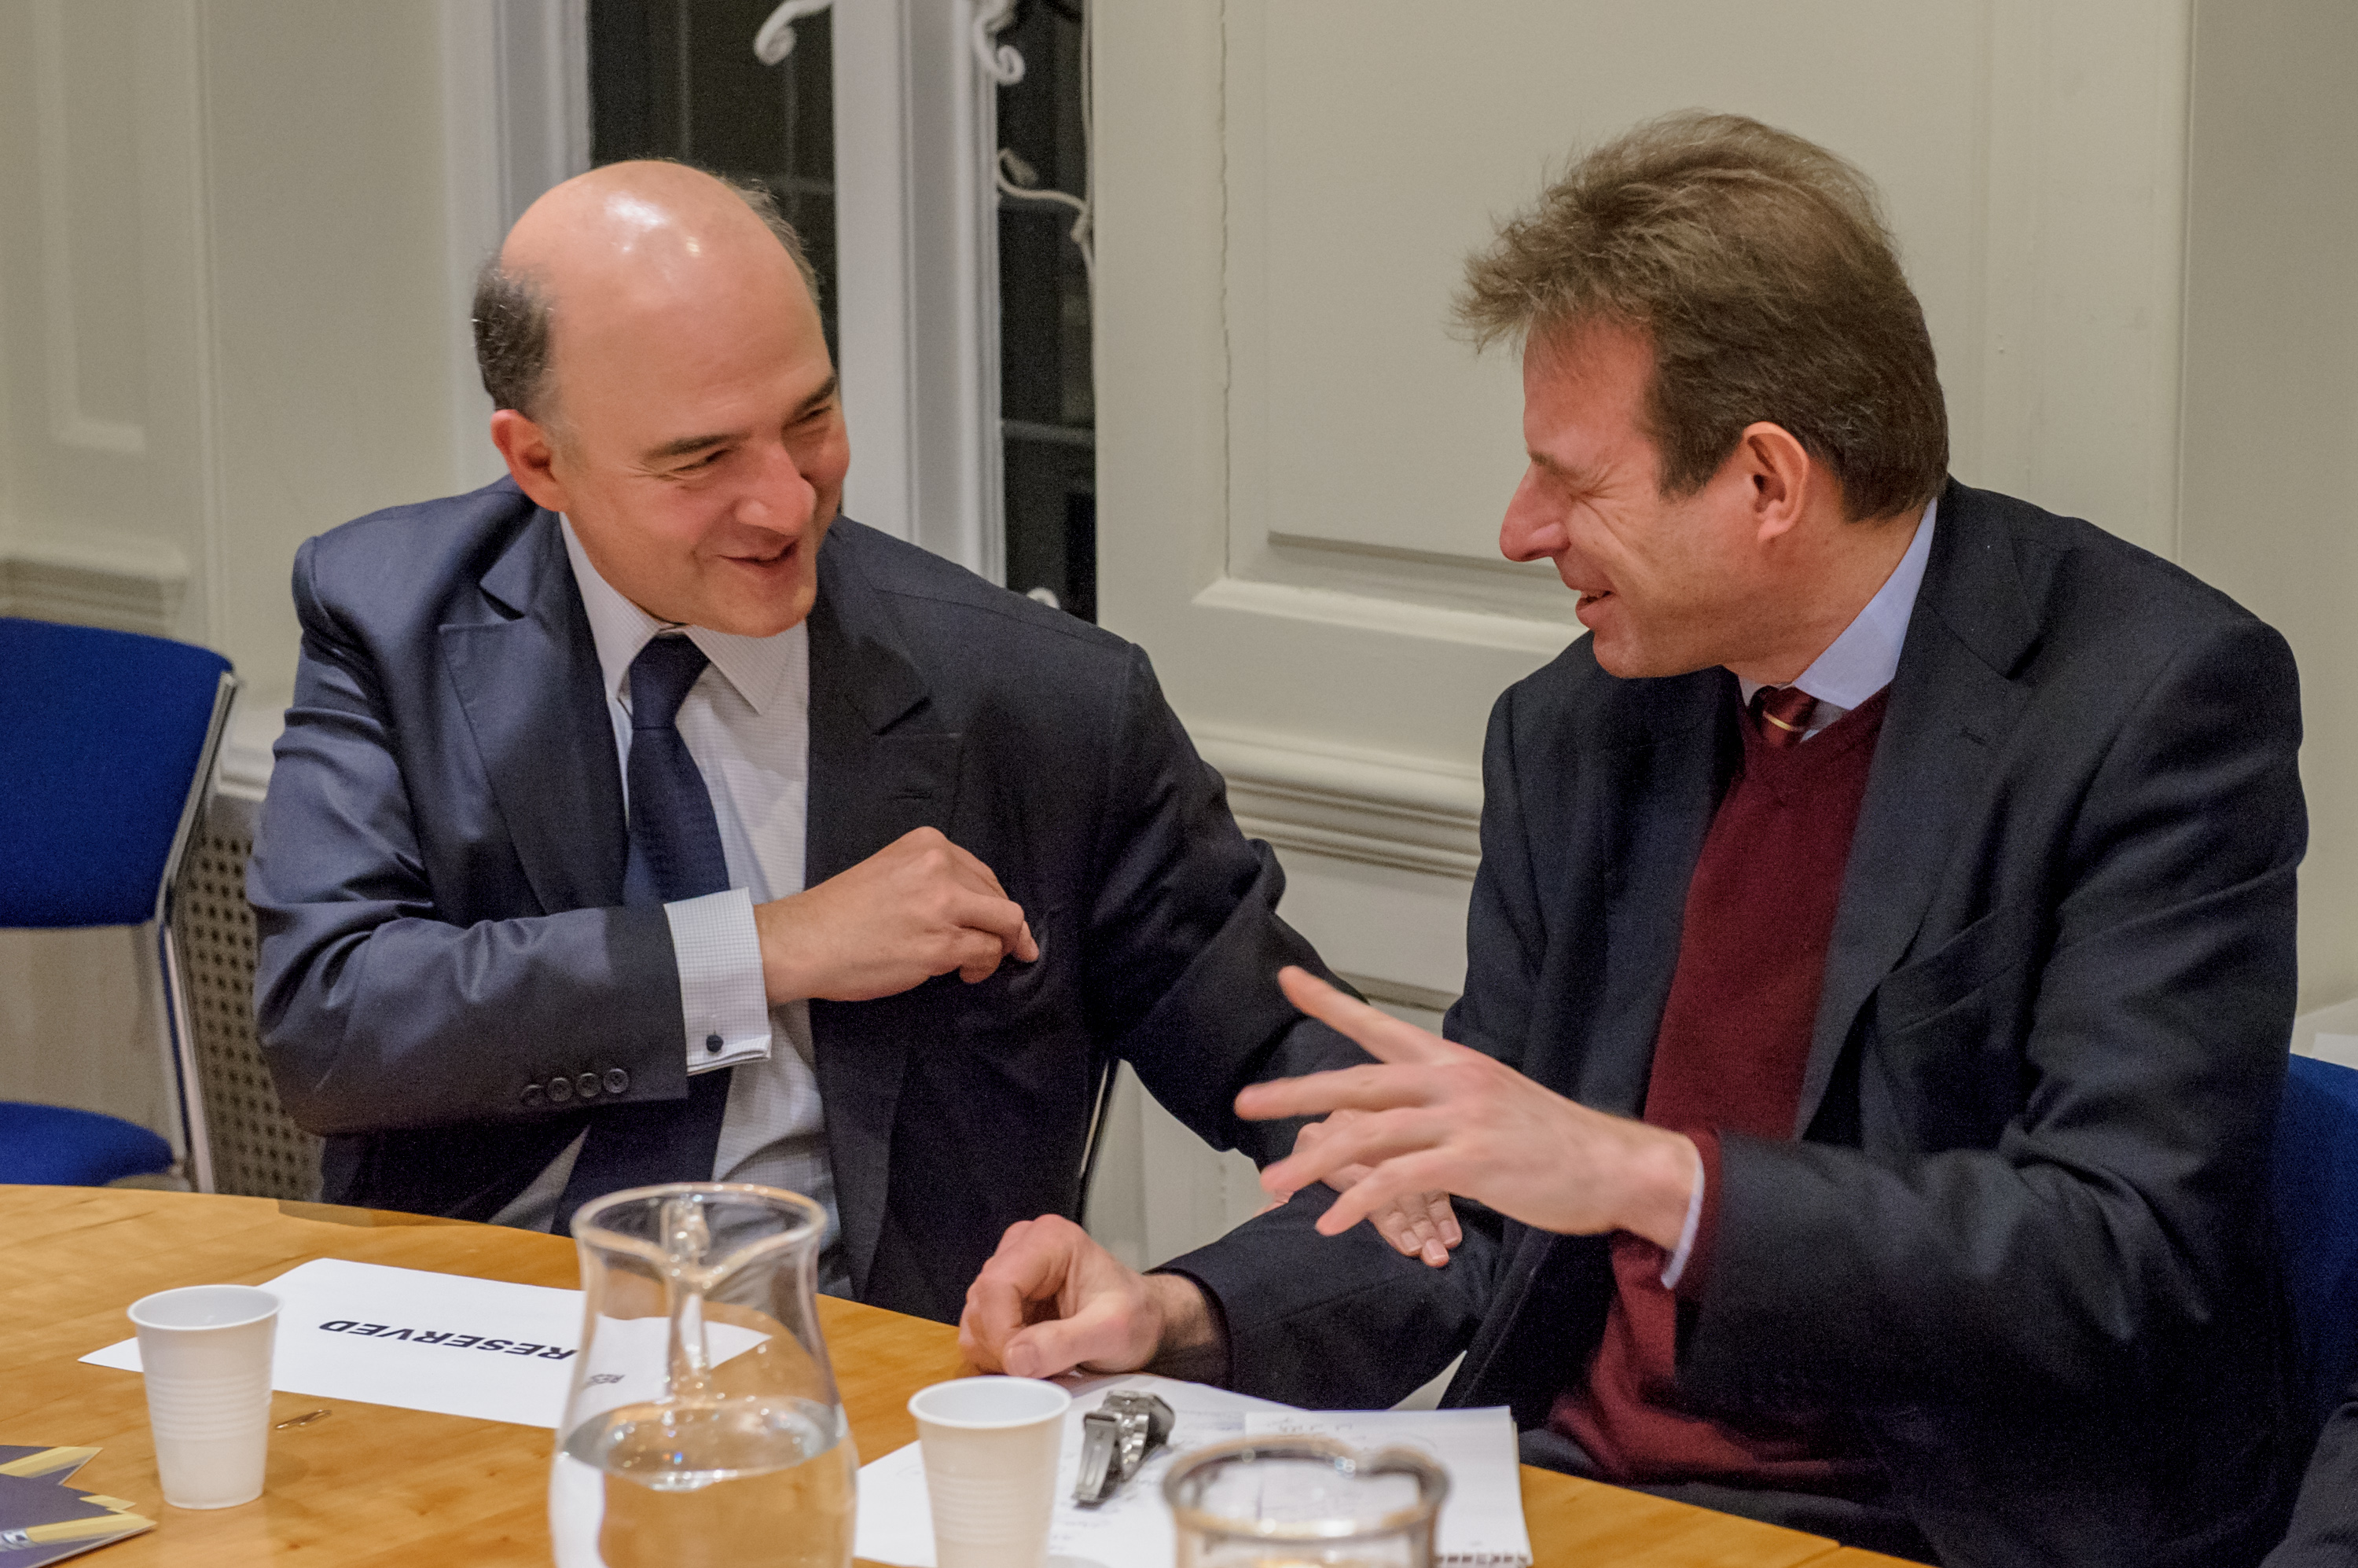 Pierre Moscovici and Charles Grant